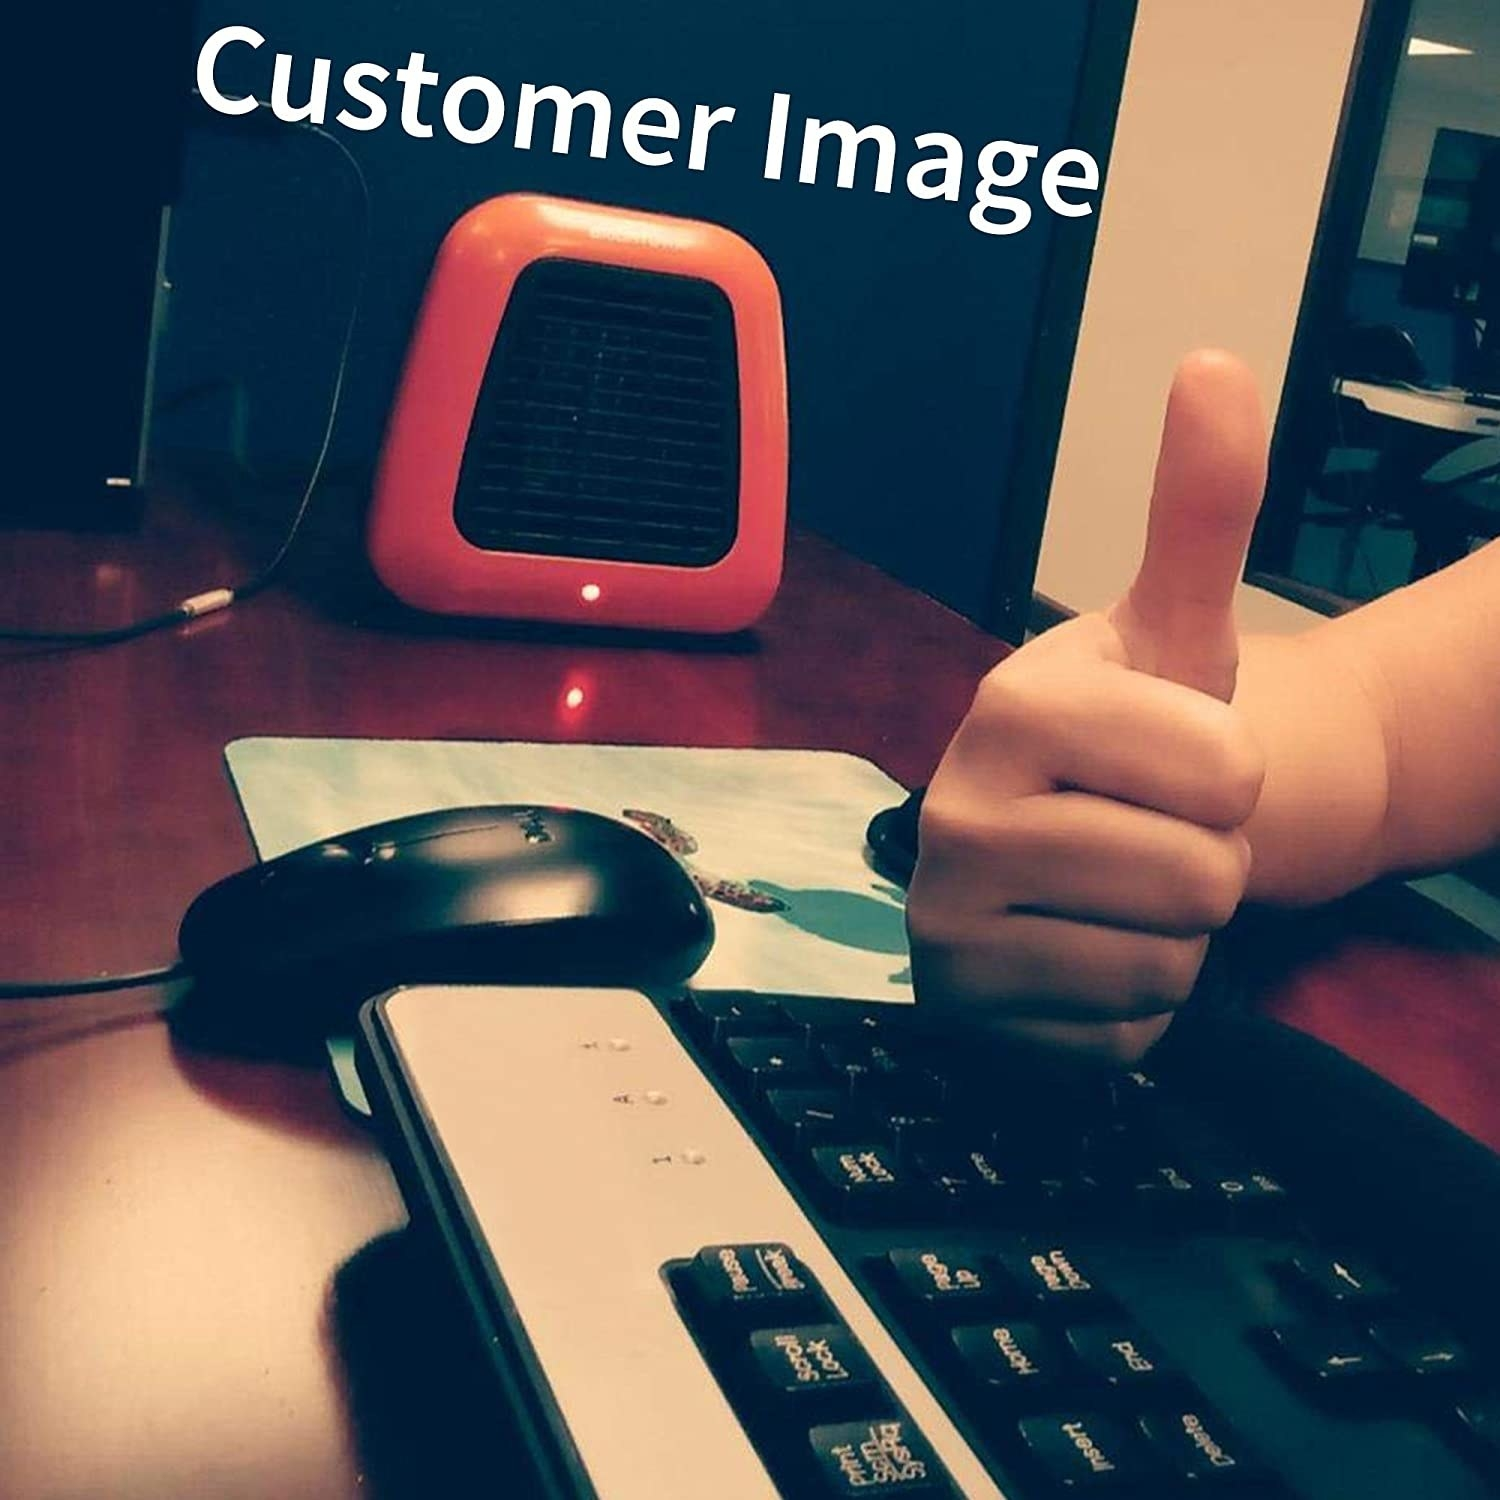 A reviewer photo of the space heater on the desk and the reviewer giving a thumbs up